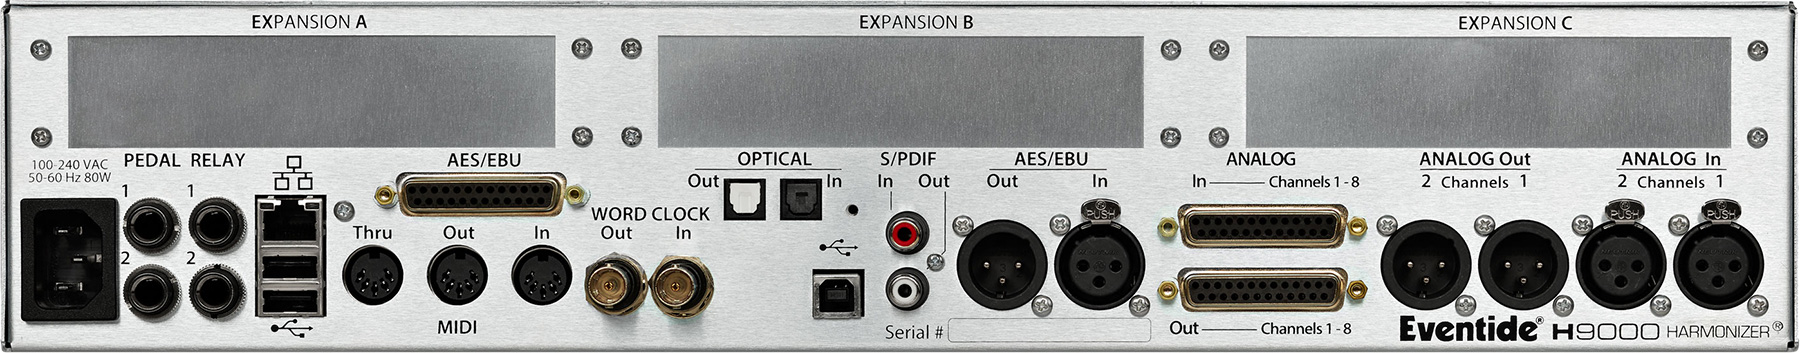 Eventide H9000 Rear panel image